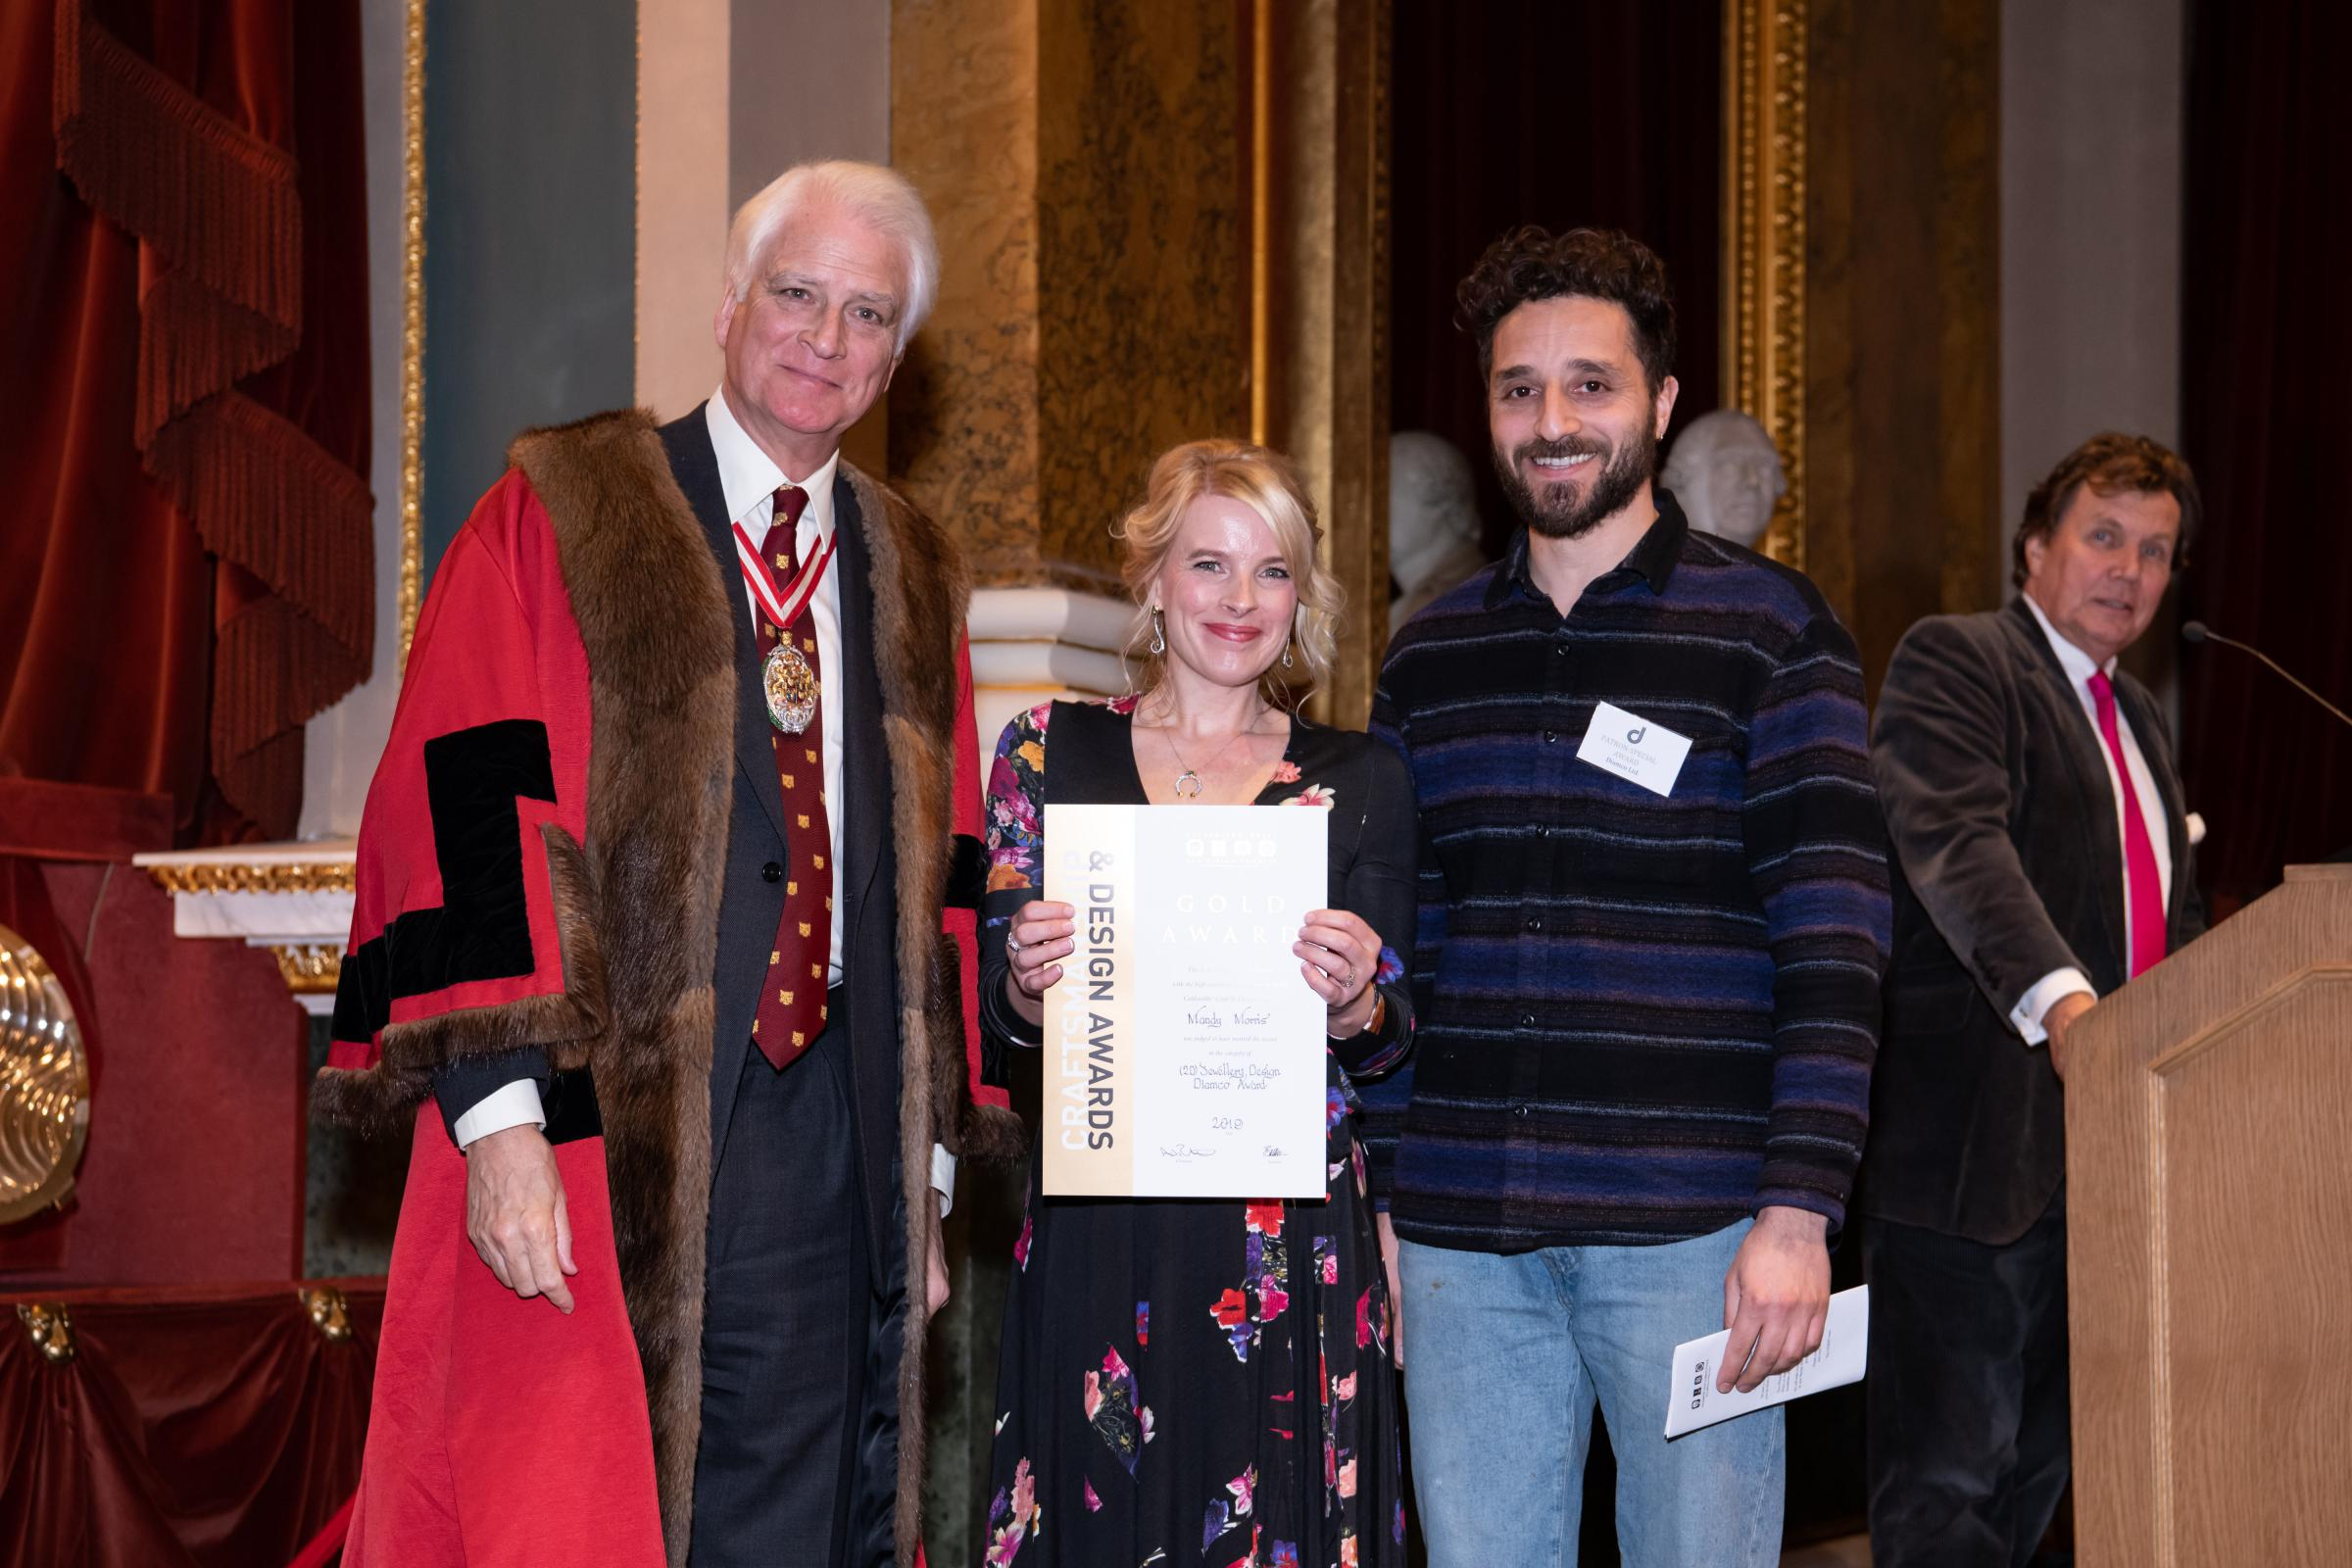 Mandy Morris, of Werk by TCJ Designs, receives her gold award from Goldsmiths' prime warden Micheal Prideaux (left) and a representative of award sponsor Diamco